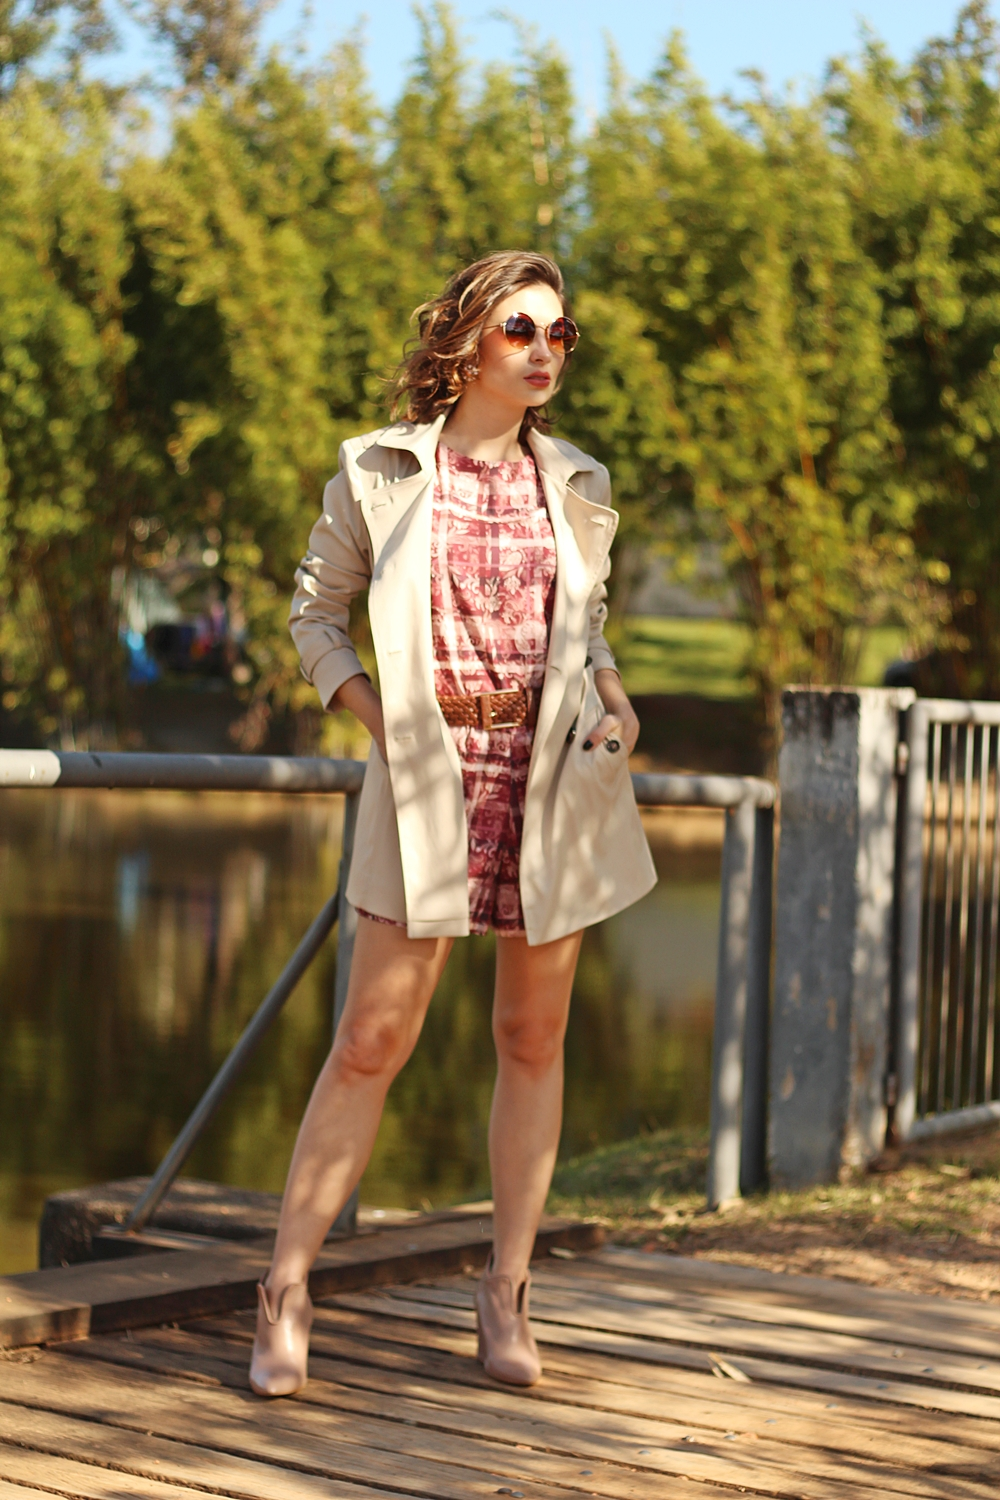 como-usar-trench-coat-look-macaquinho-blog-van-duarte-1